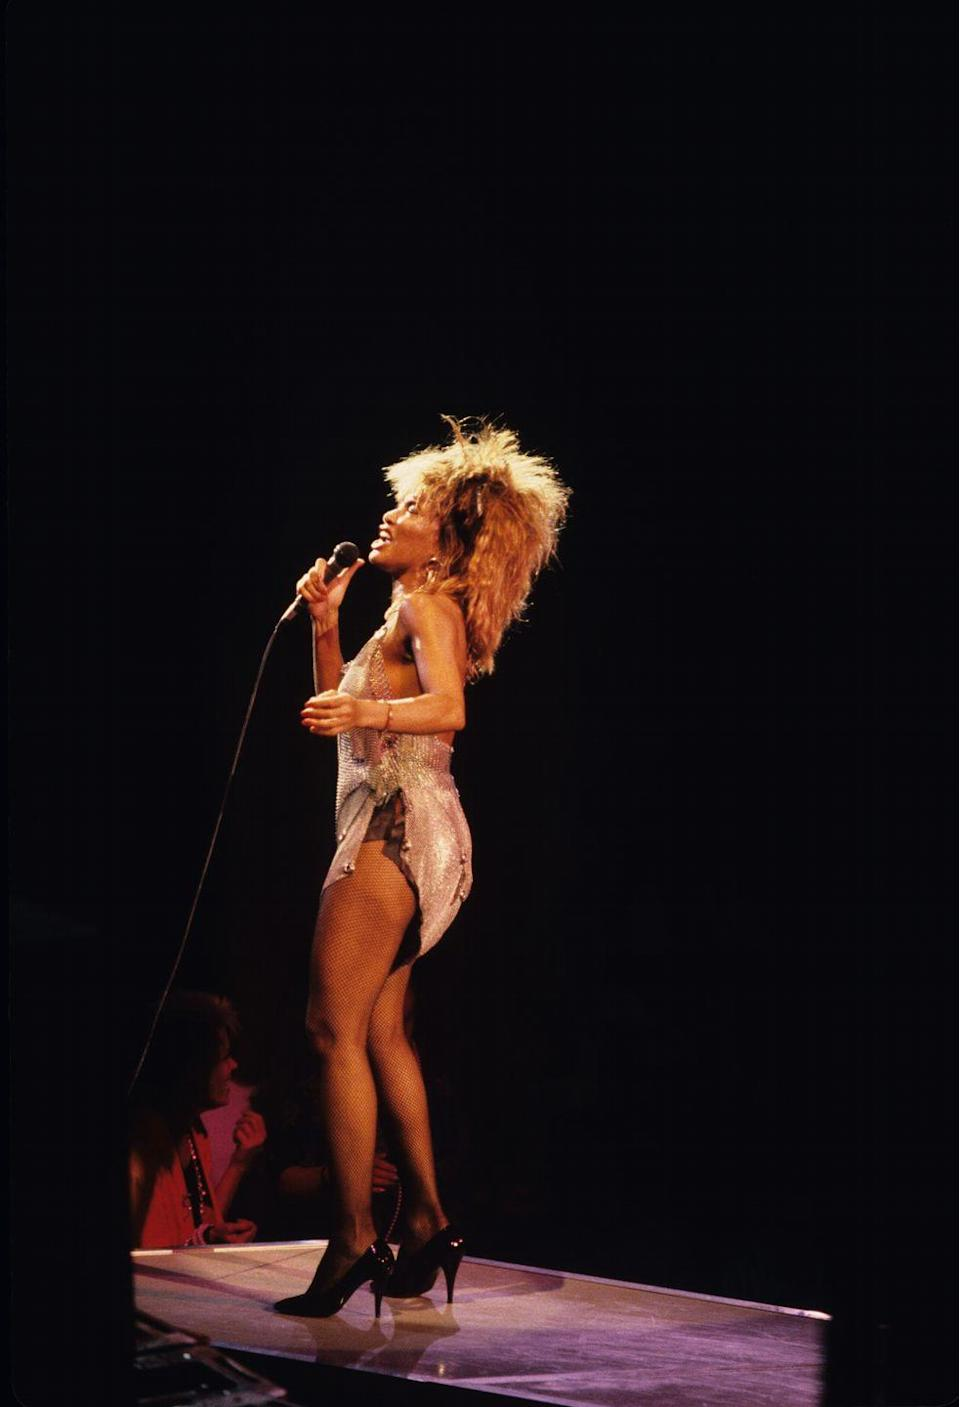 <p>There's nothing that screams the '80s like patent leather, and Tina Turner knew what was up when she wore these pumps while performing at Madison Square Garden. </p>